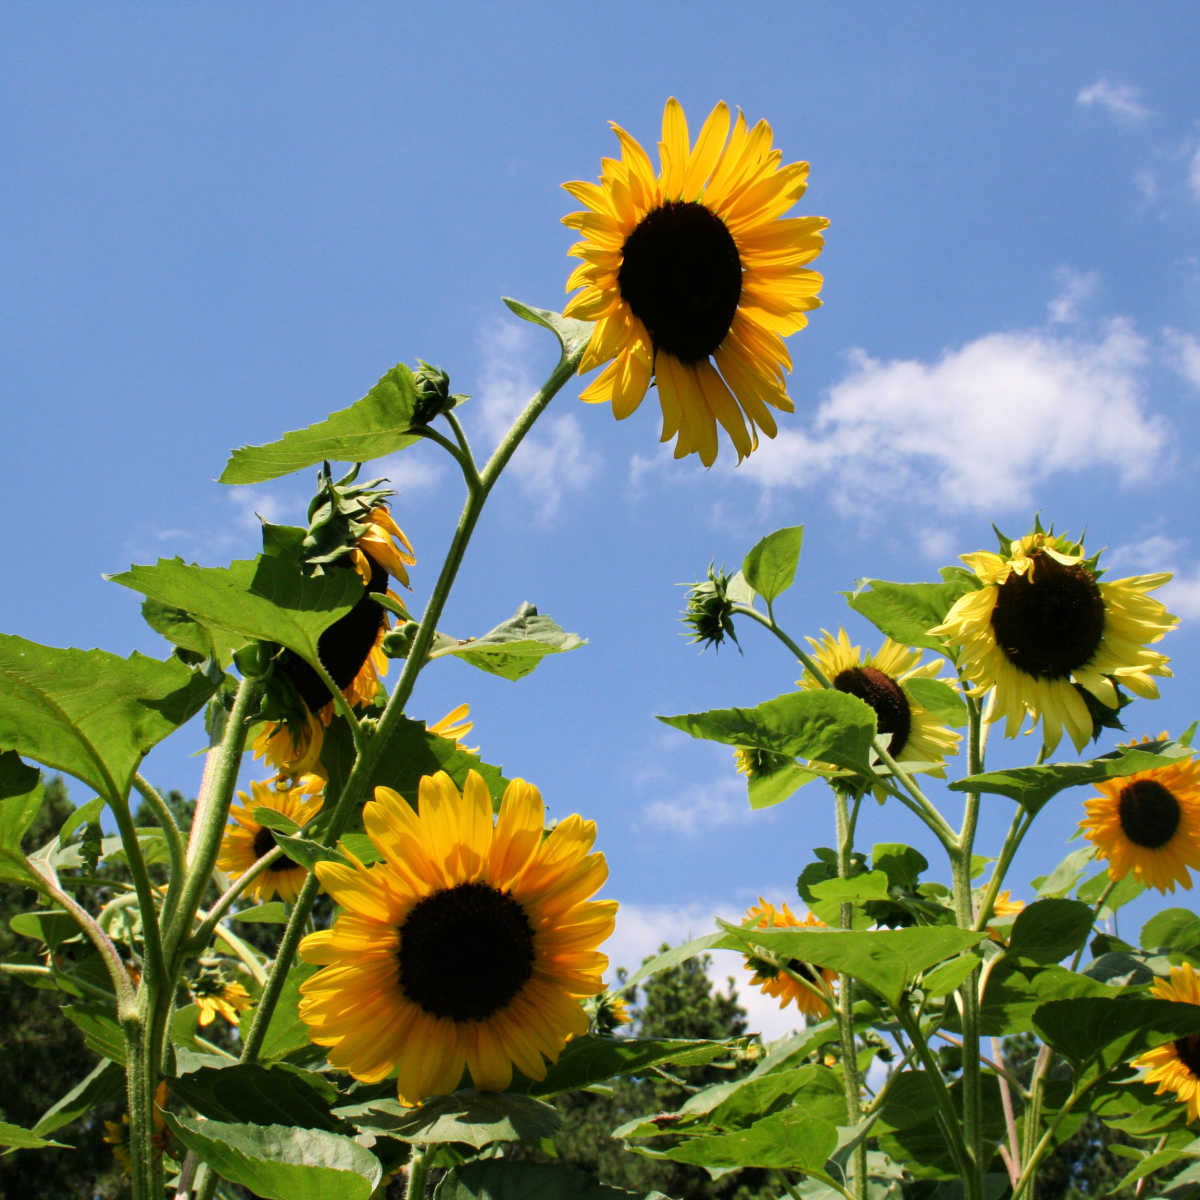 a field of sunflowers blooming against a bright blue sky